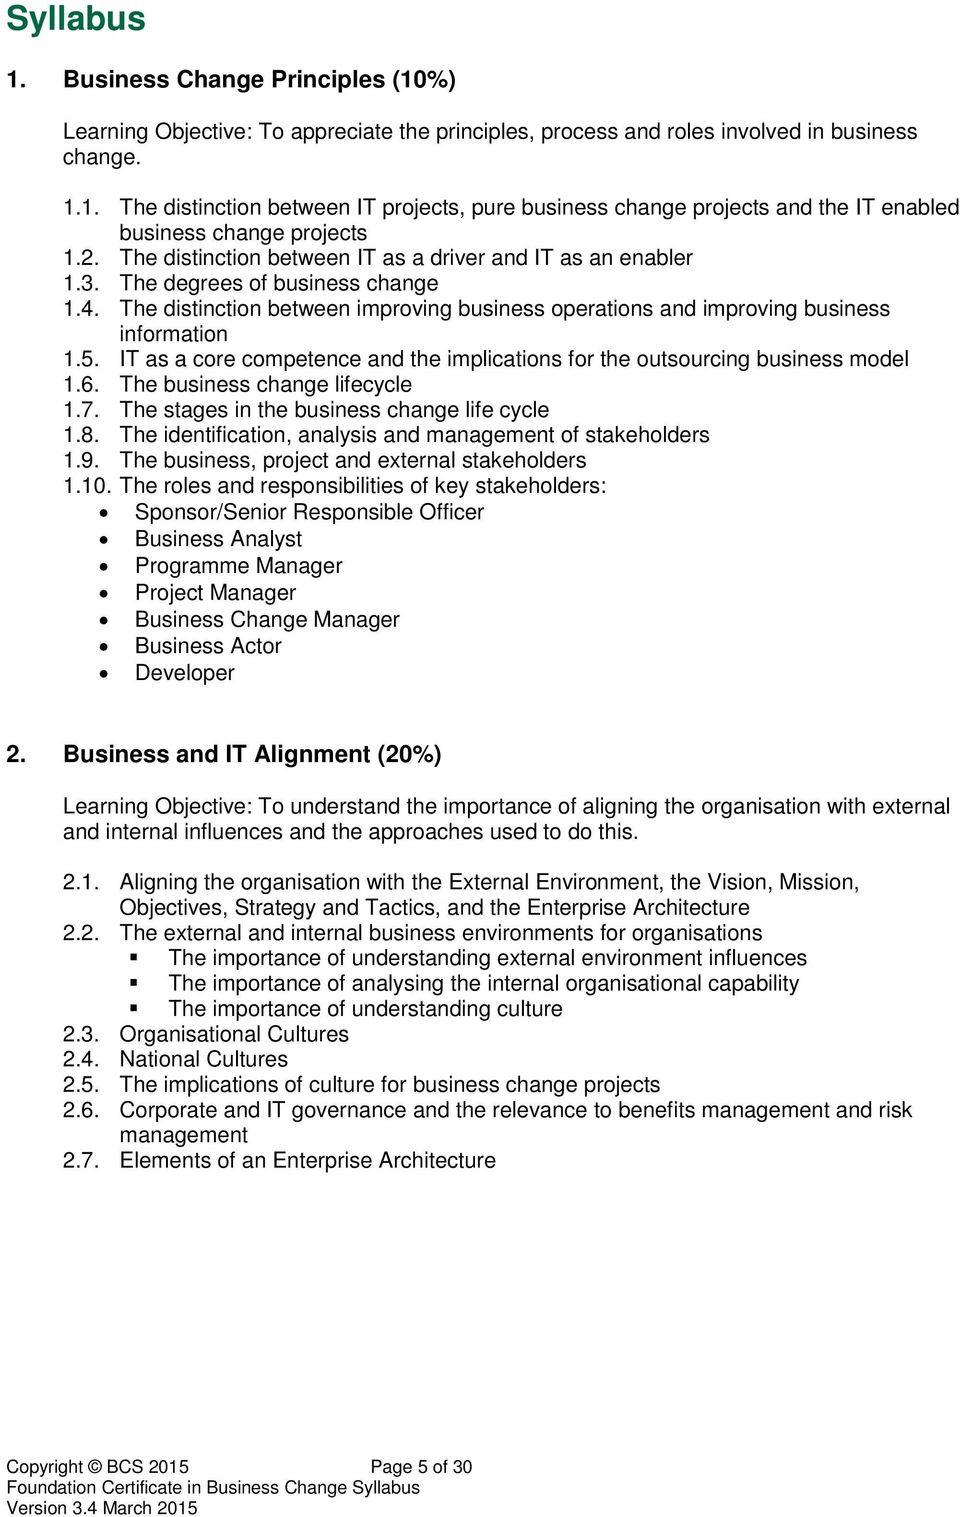 Bcs Foundation Certificate In Business Change Syllabus Pdf